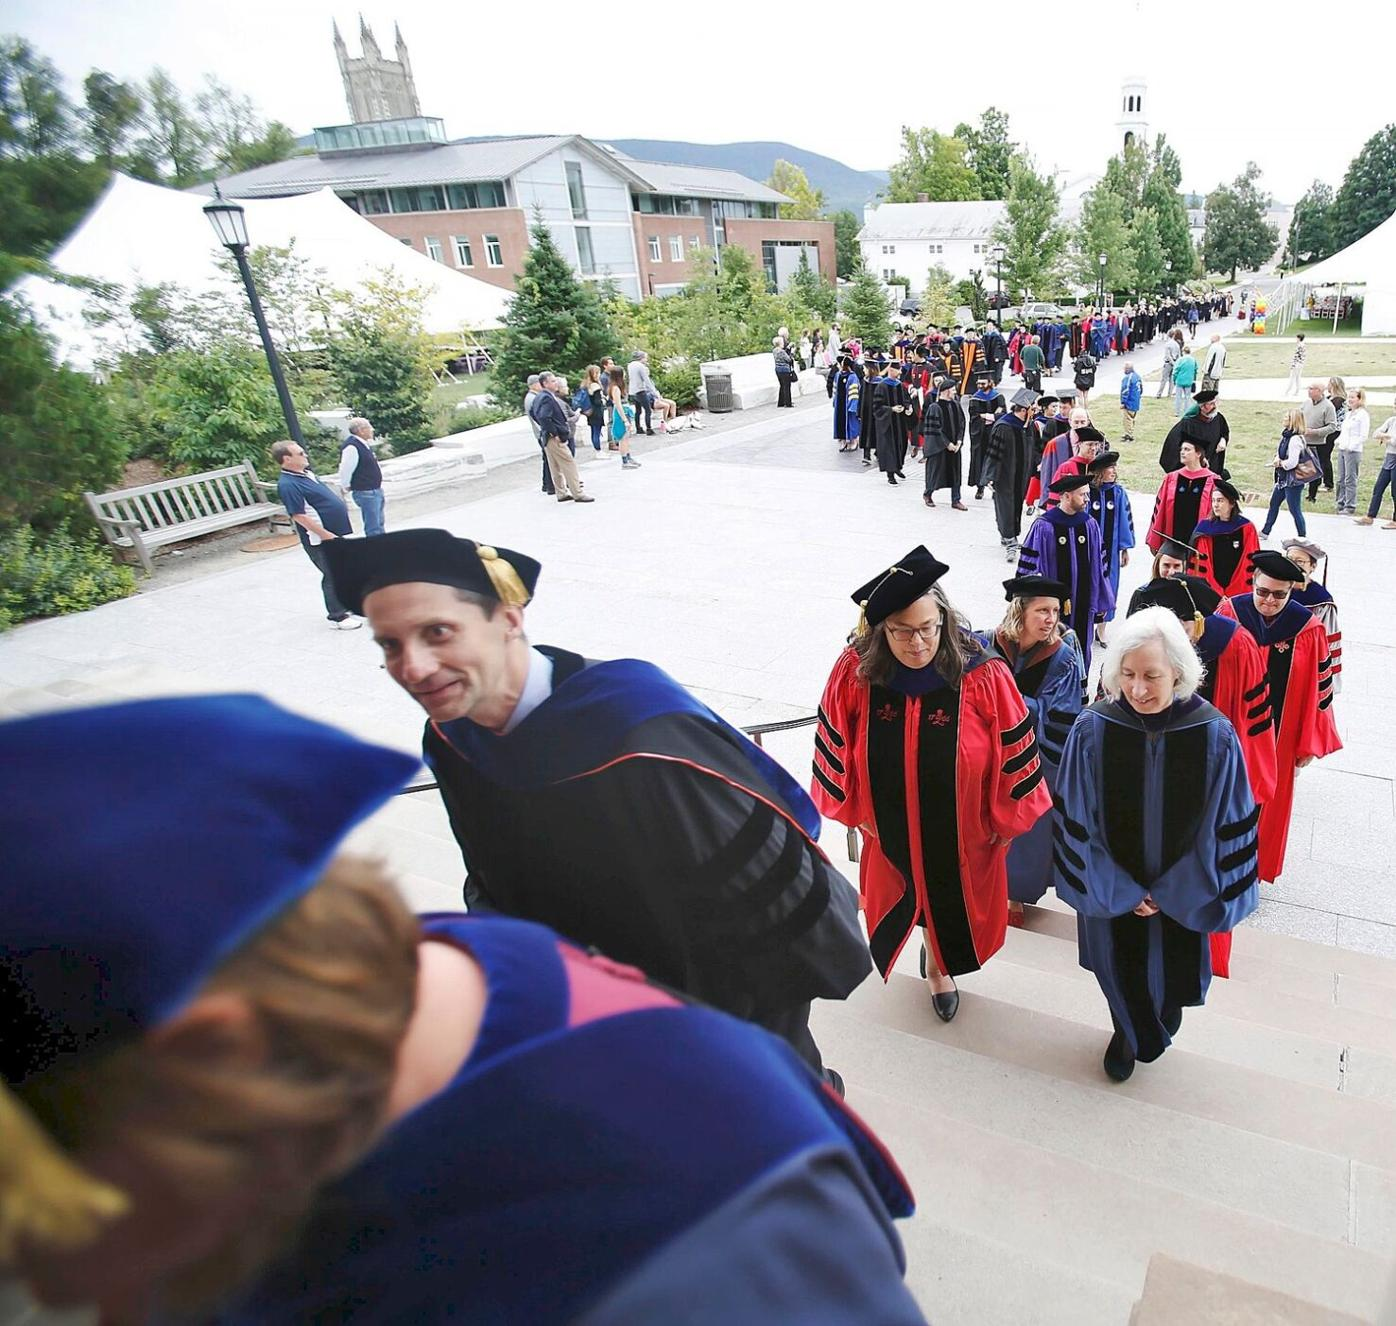 New Williams College president 'connected to those who found freedom and to those it was denied'